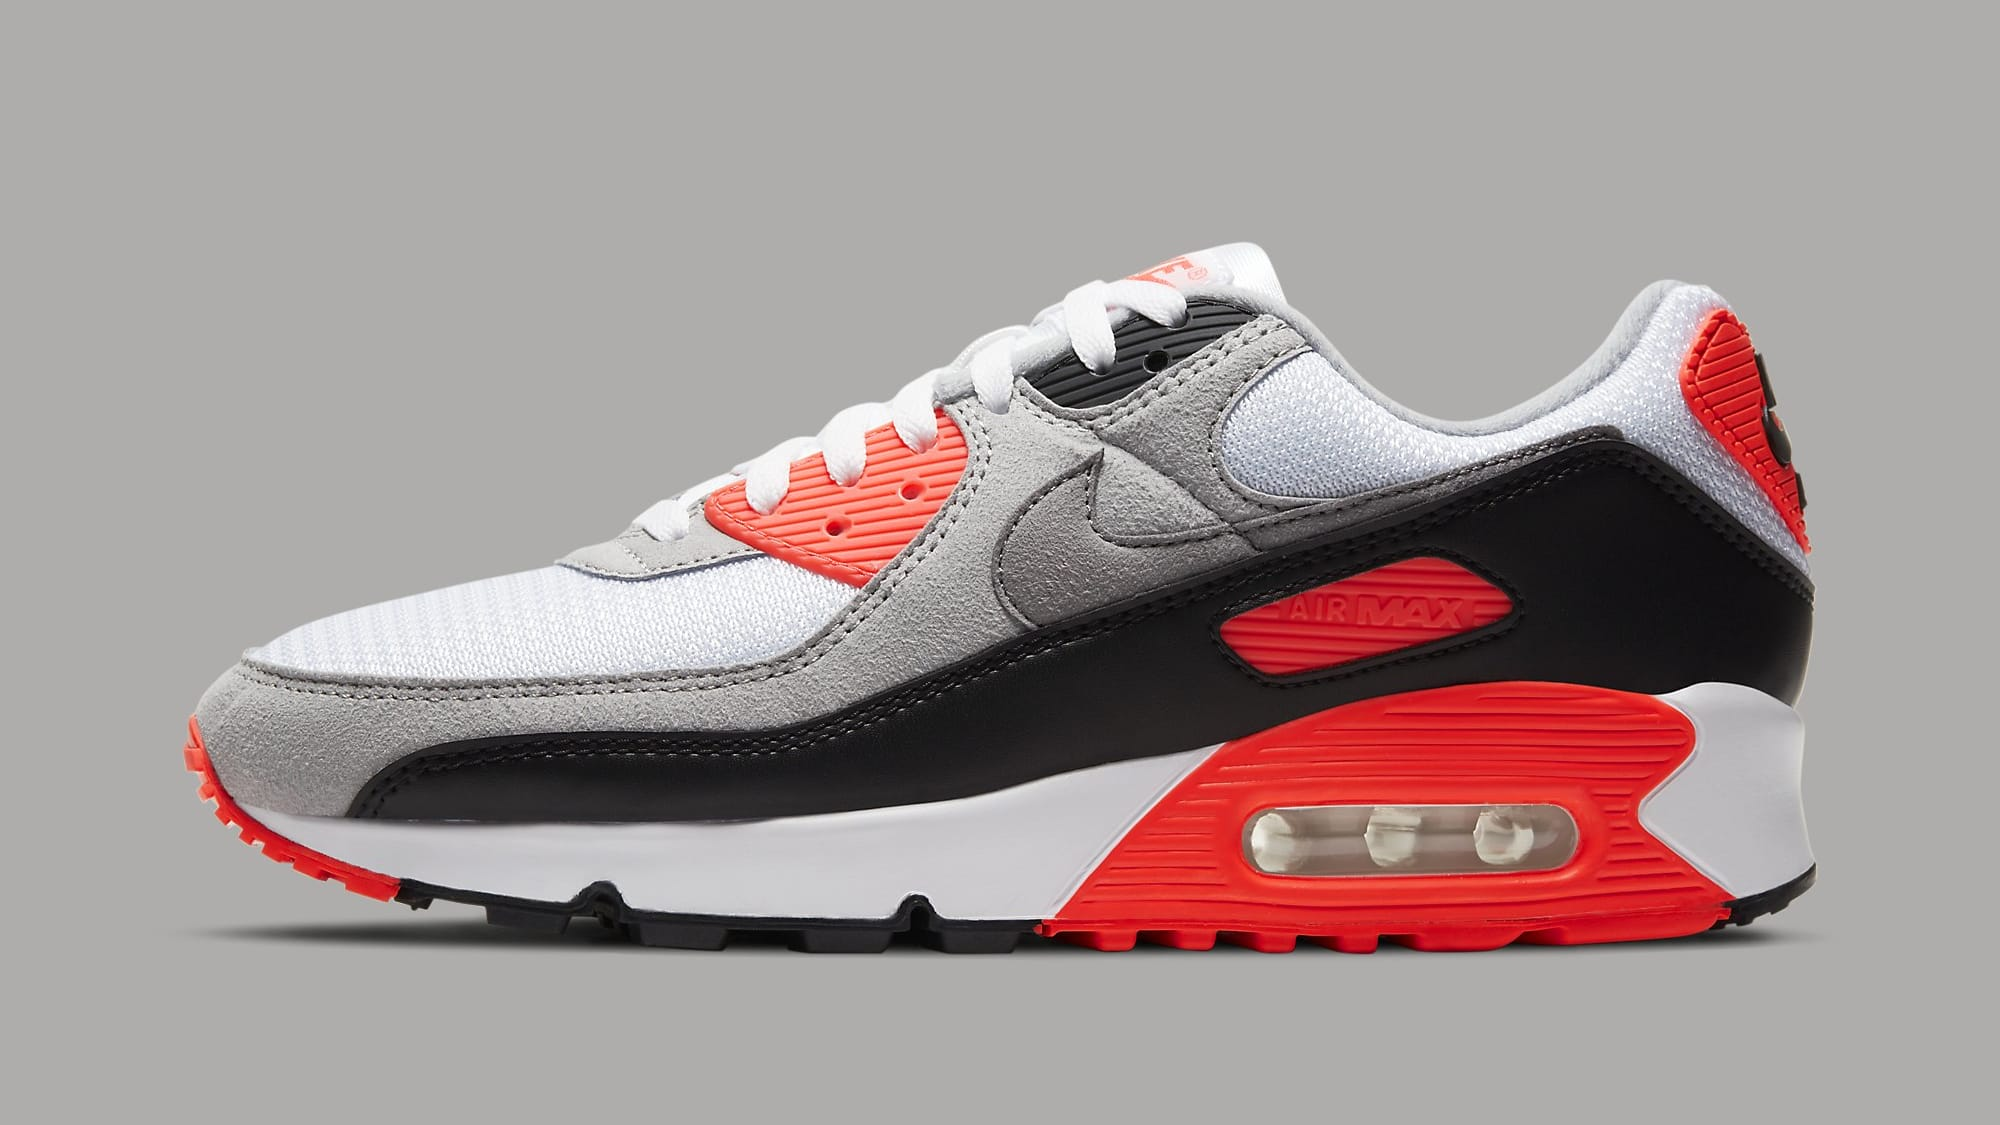 Nike Air Max 90 'Infrared' CT1685-100 Lateral